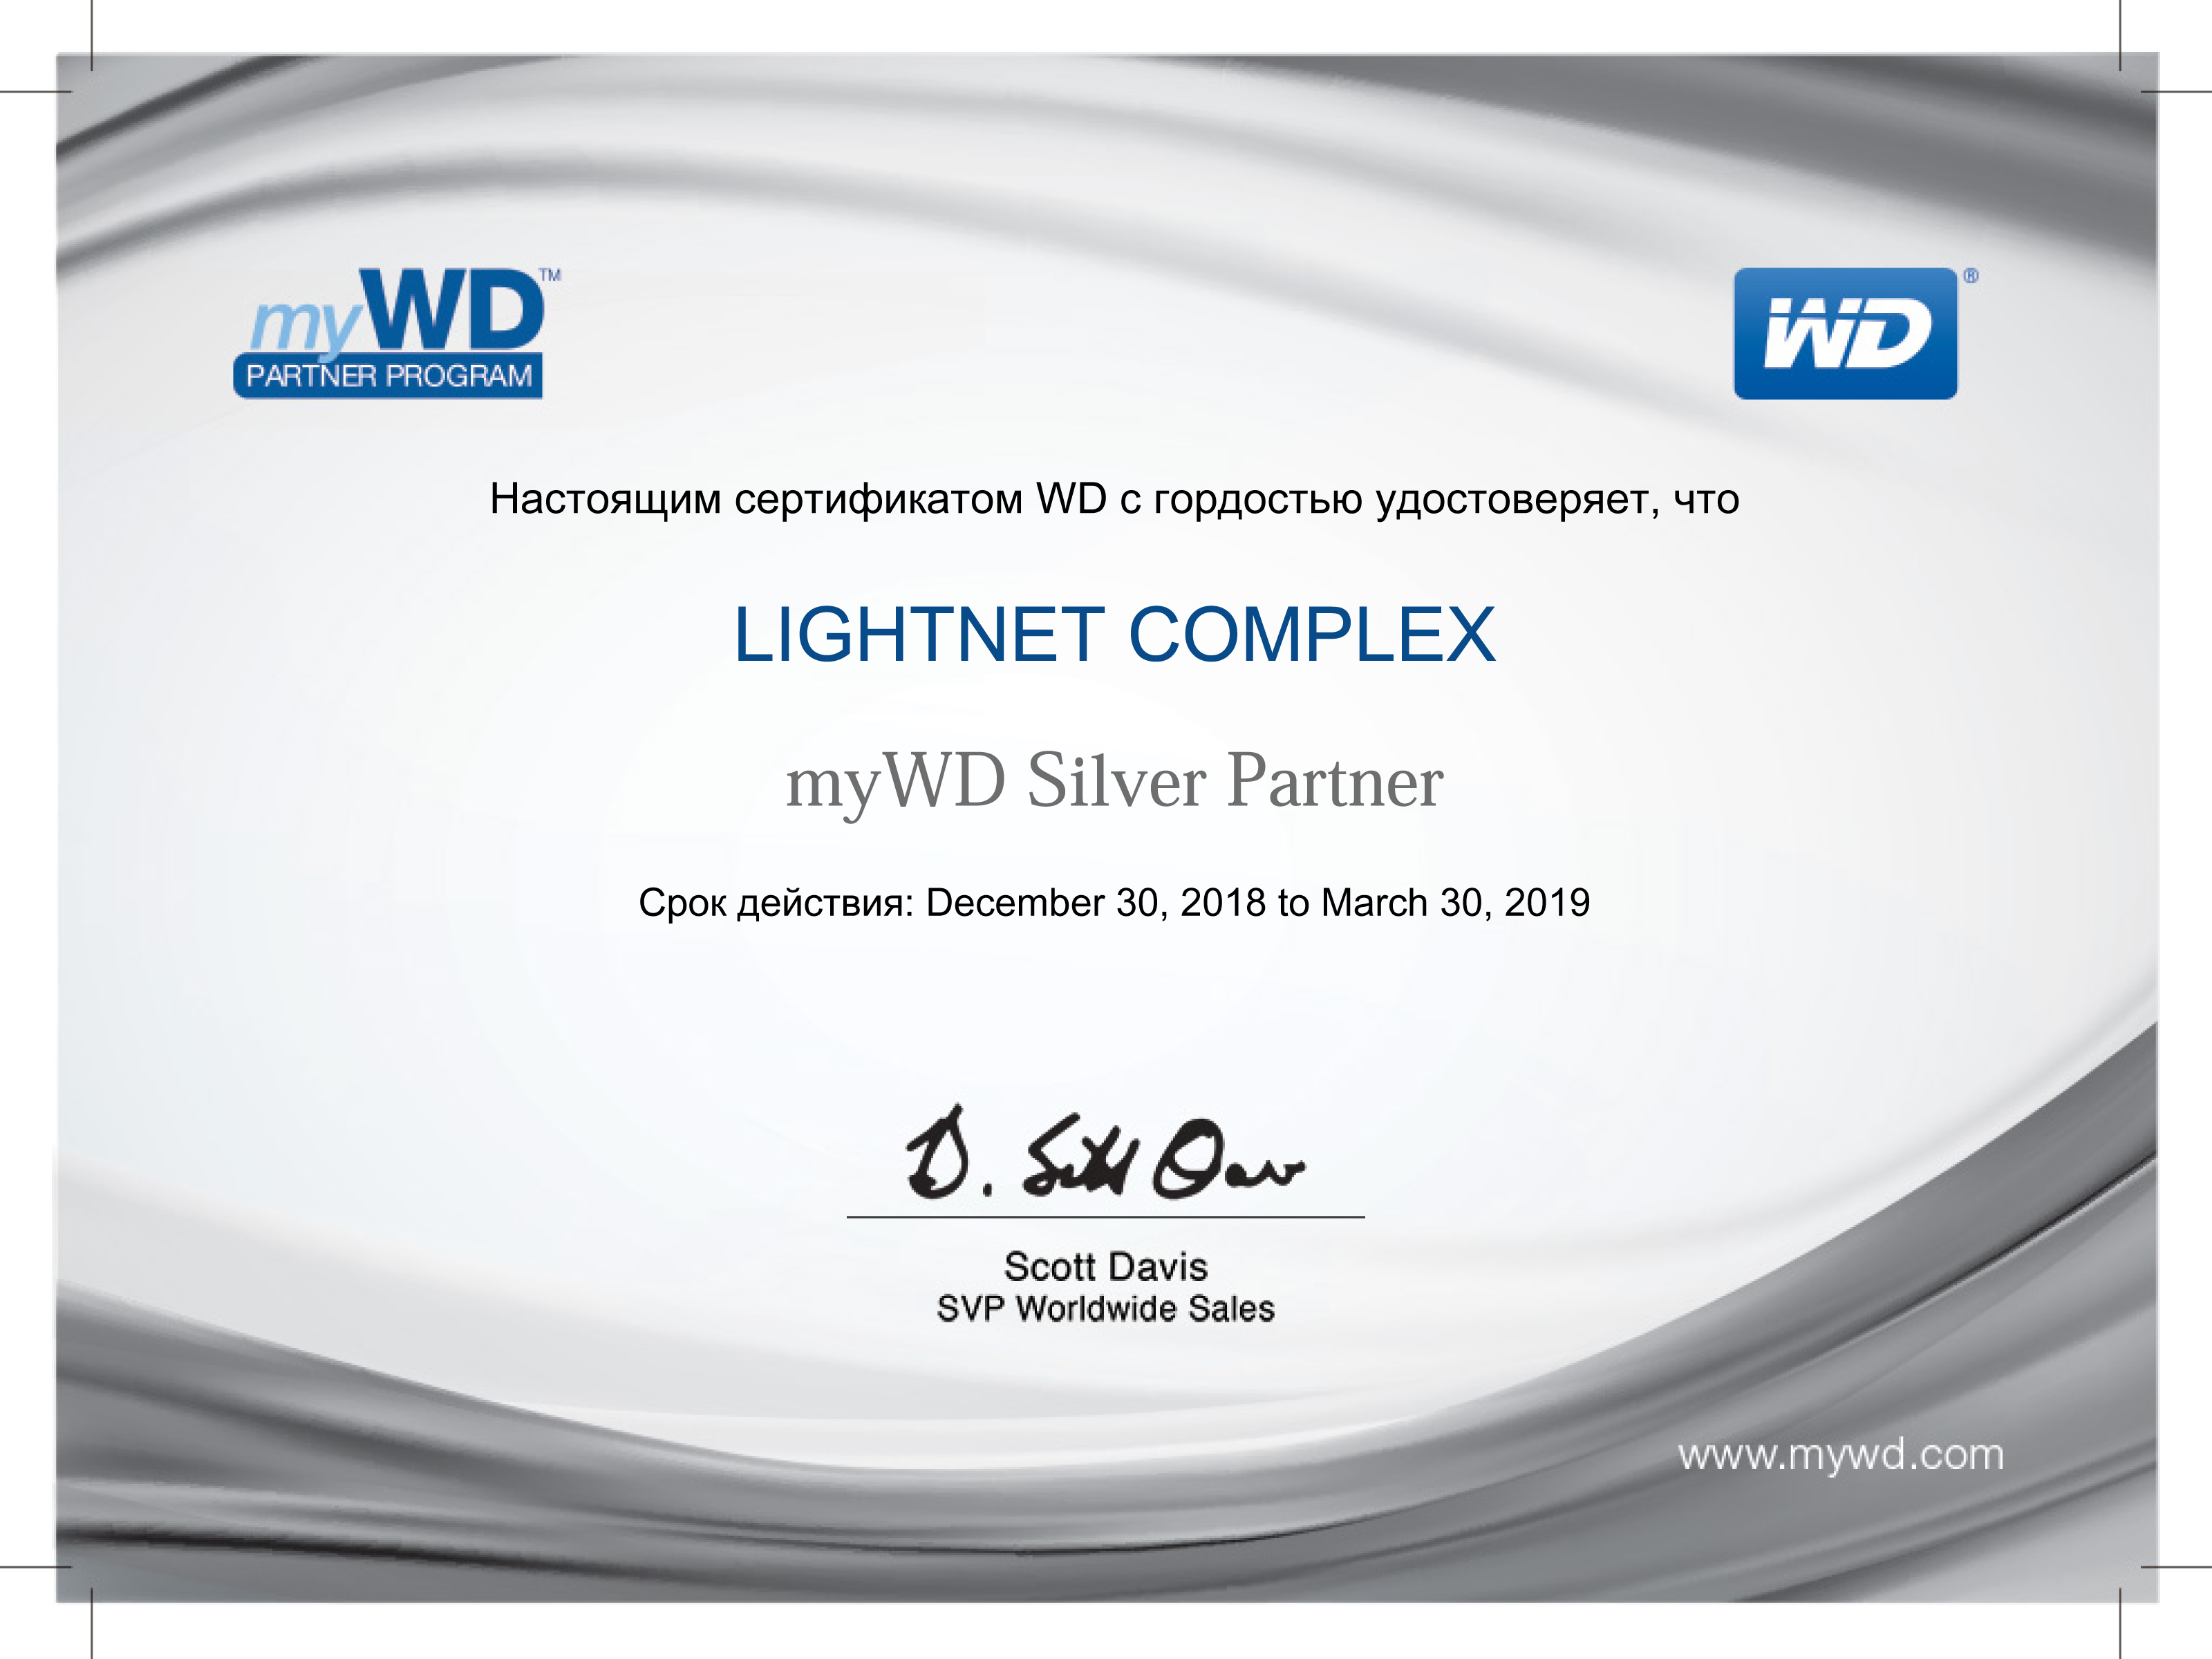 Western Digital - myWD Silver Partner